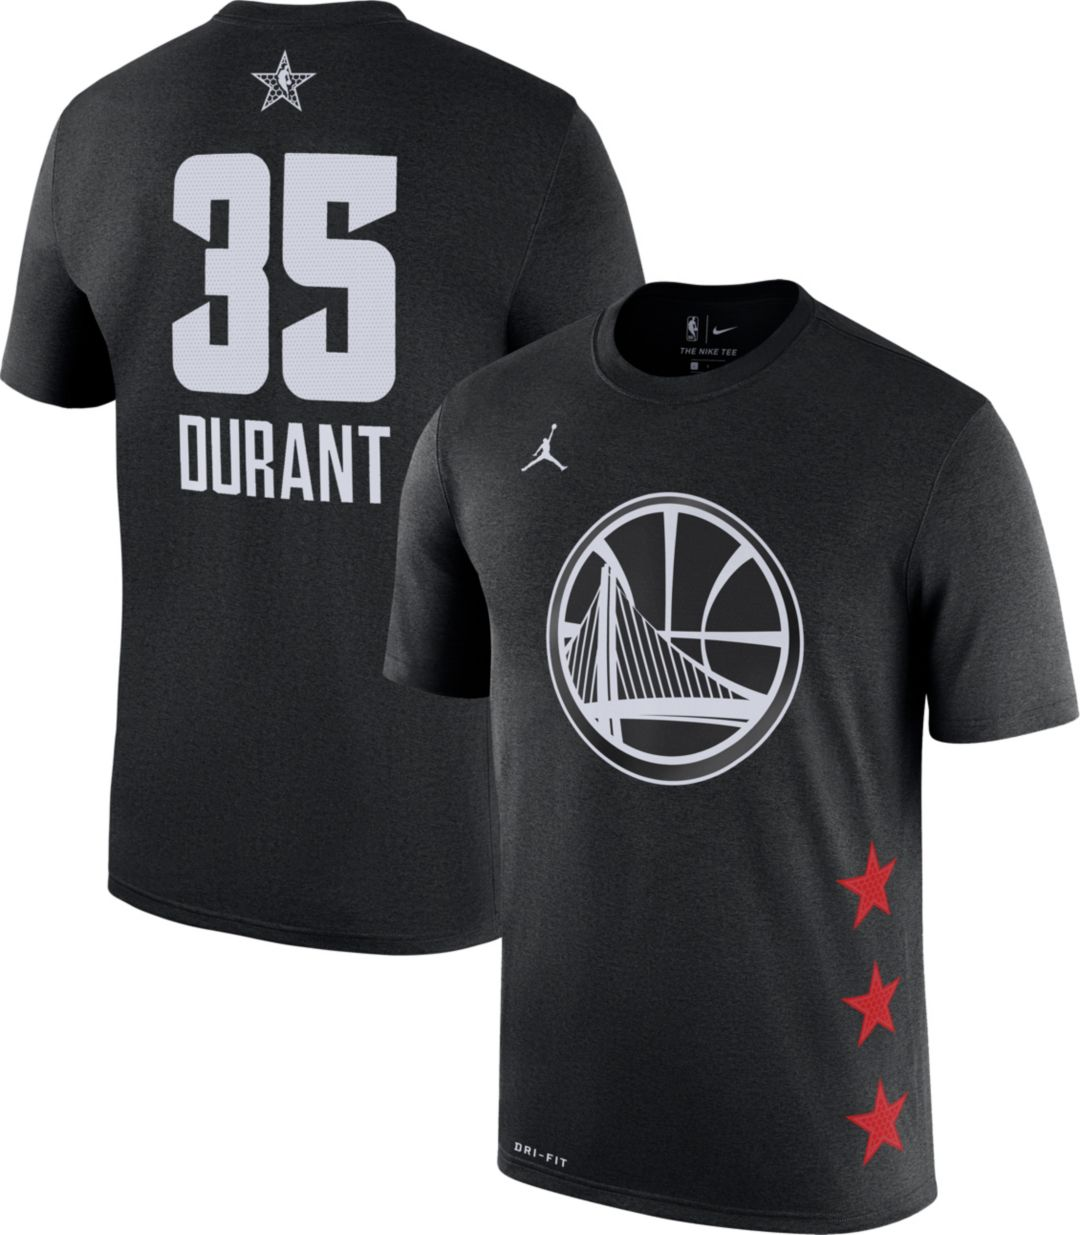 d7383b9a135 Jordan Youth 2019 NBA All-Star Game Kevin Durant Dri-FIT Black T ...